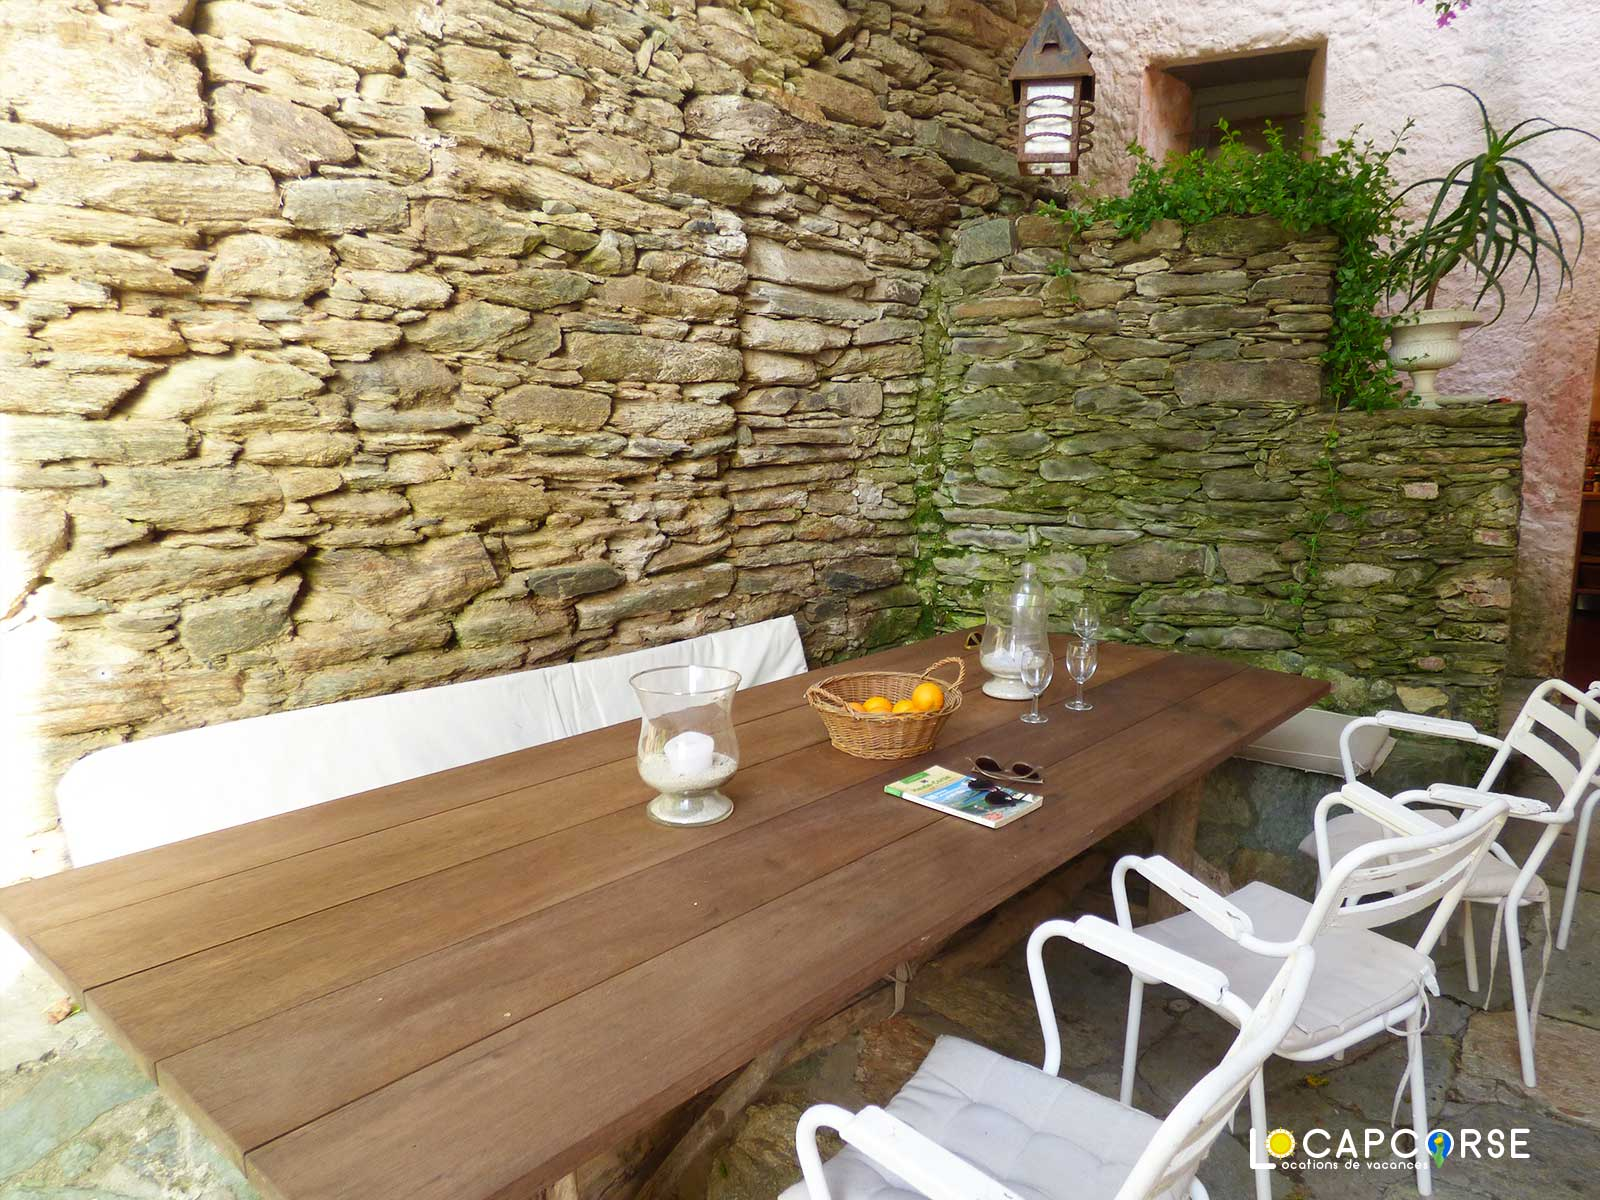 Locations Cap Corse - The other dining area behind the house with the door giving direct access to the kitchen